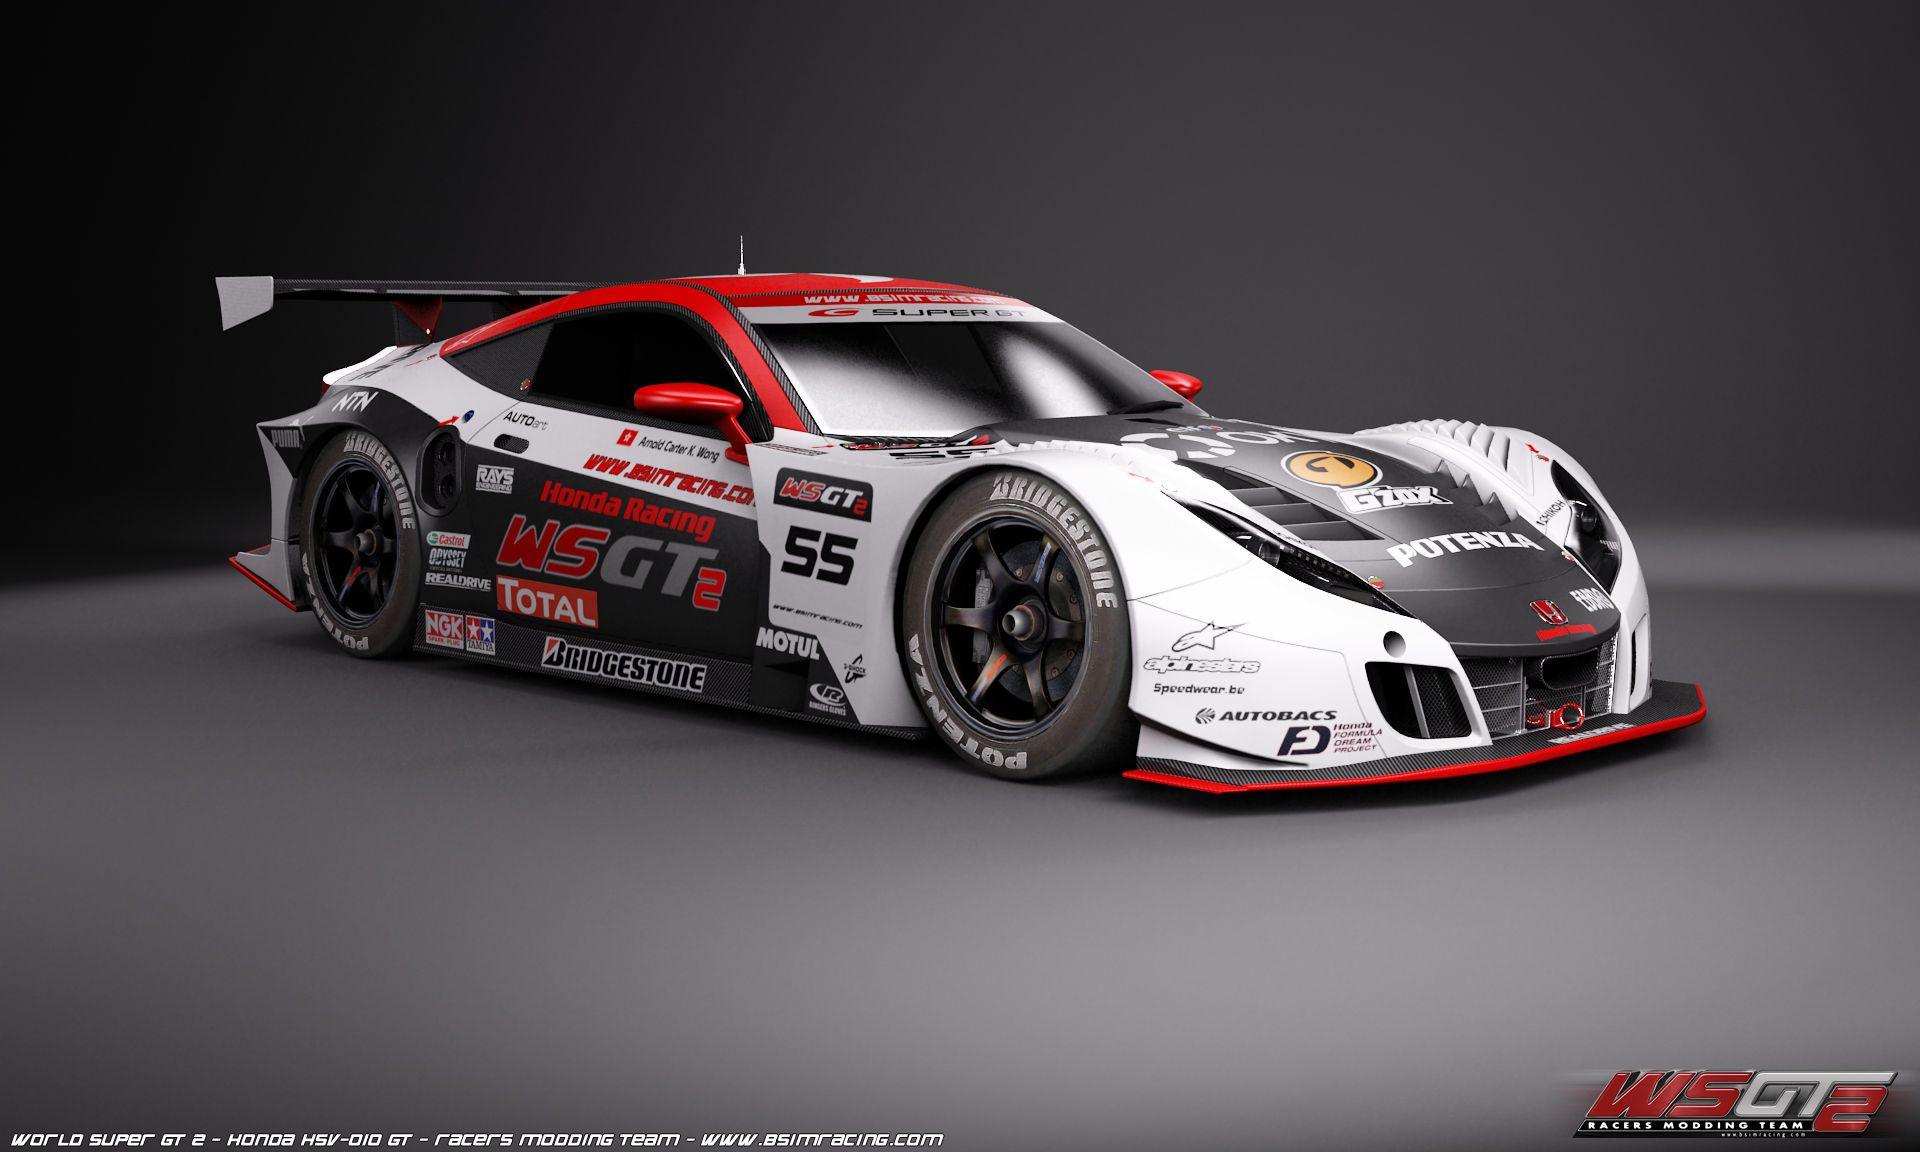 Honda Hsv Super Gt World Super Gt 2 First Honda Hsv 010 In Game